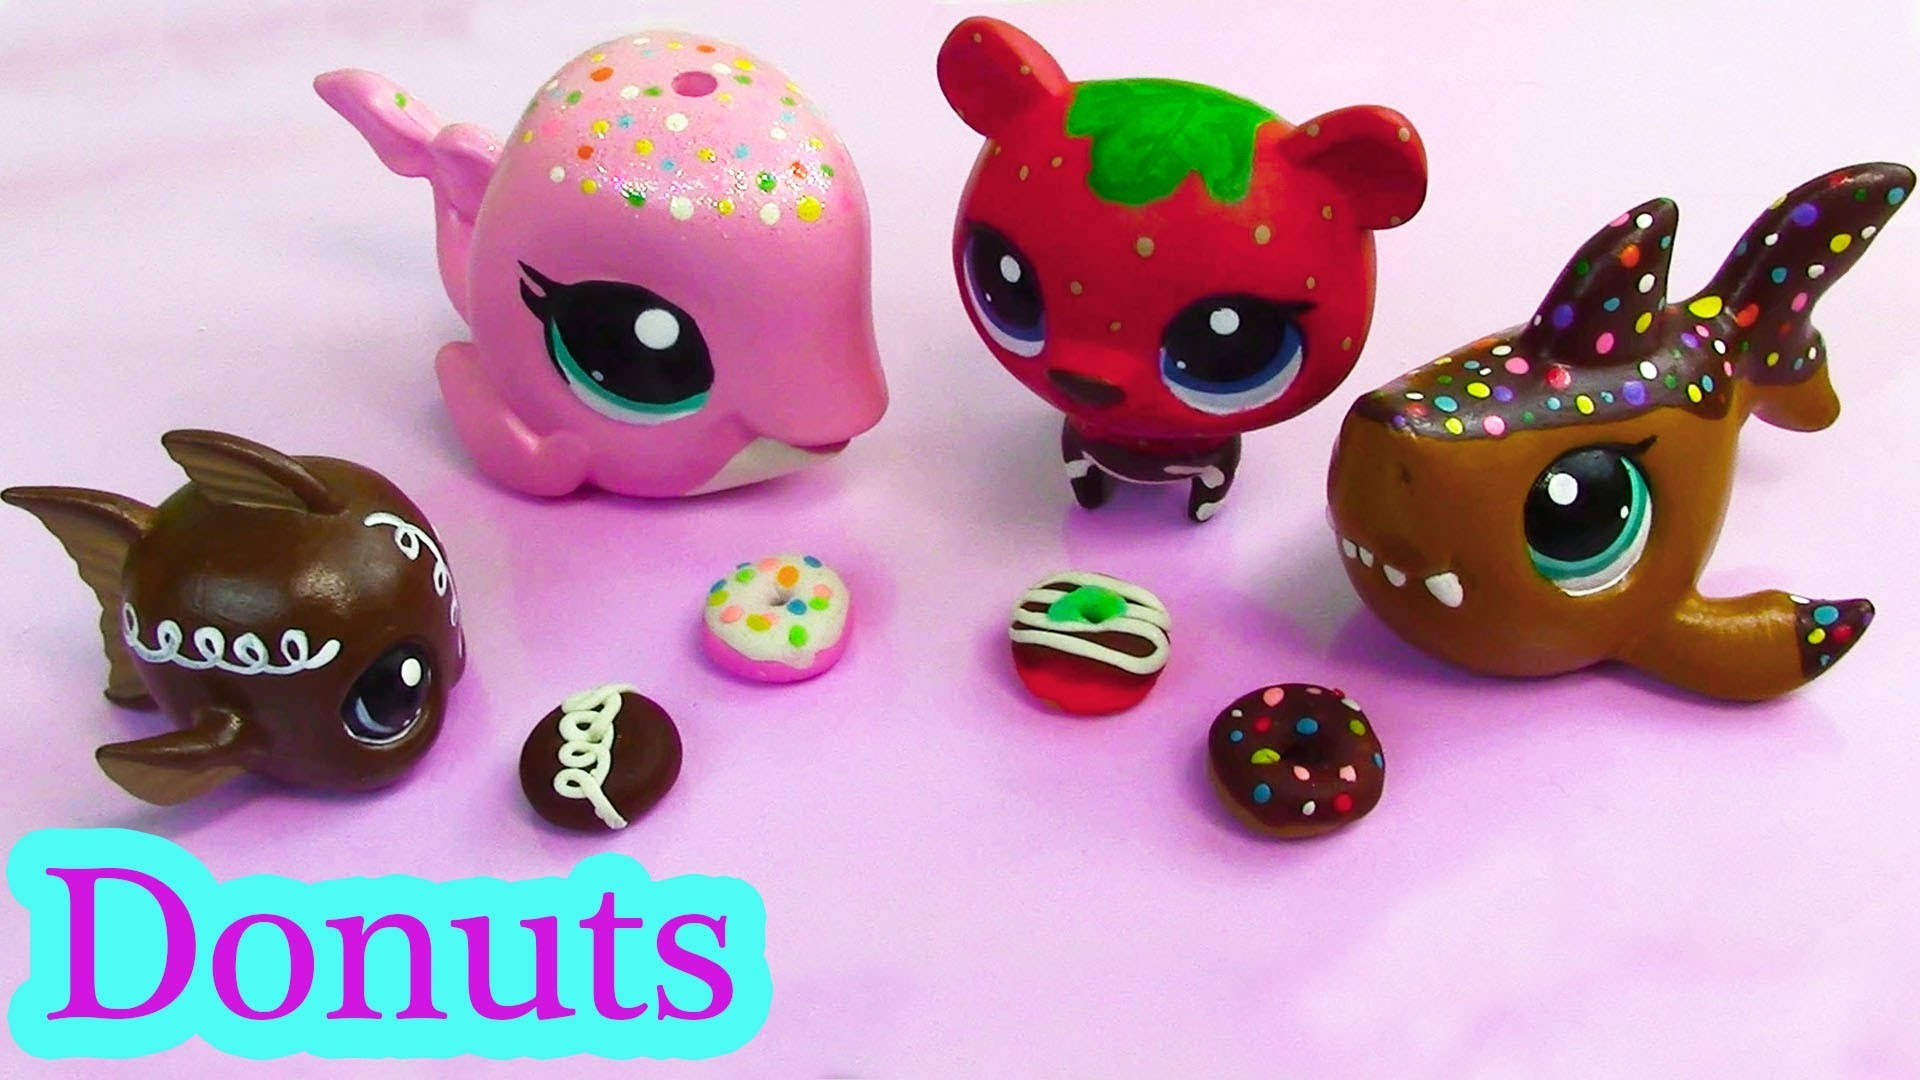 Littlest Pet Shop Play Doh DONUTS  Custom DIY Mini LPS Food Playdoh